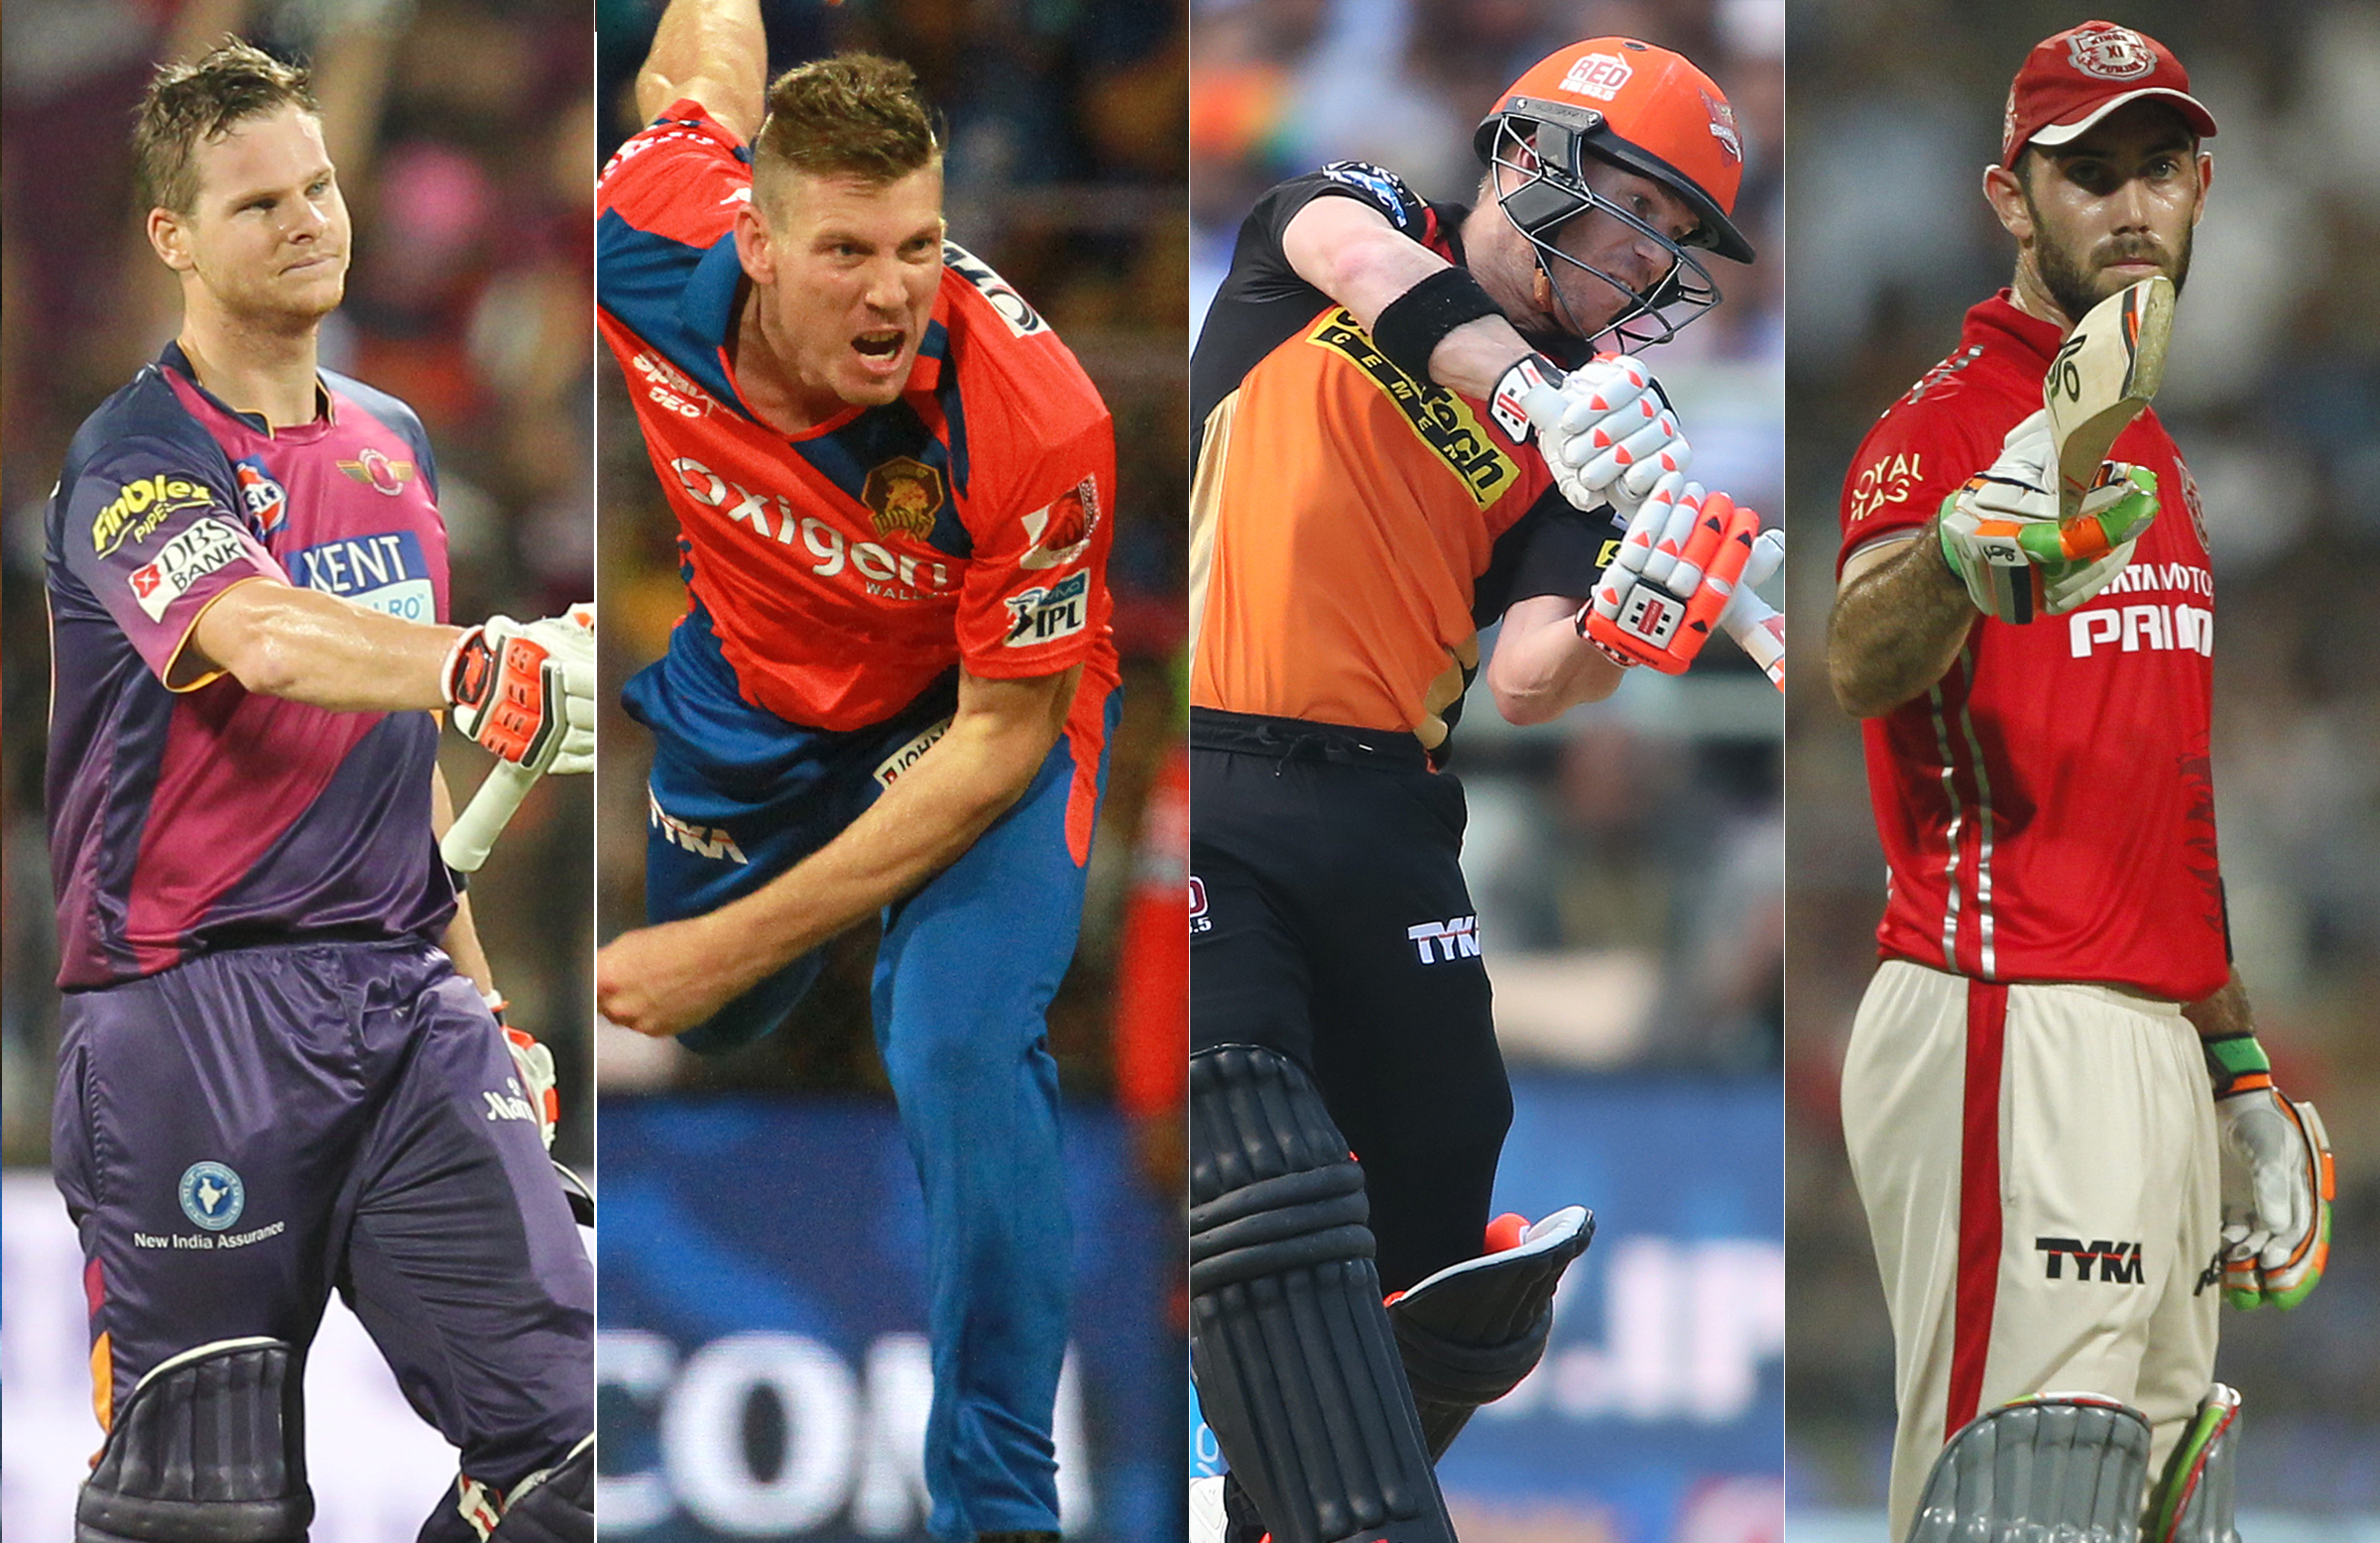 ipl 2018 the all you need to know guide